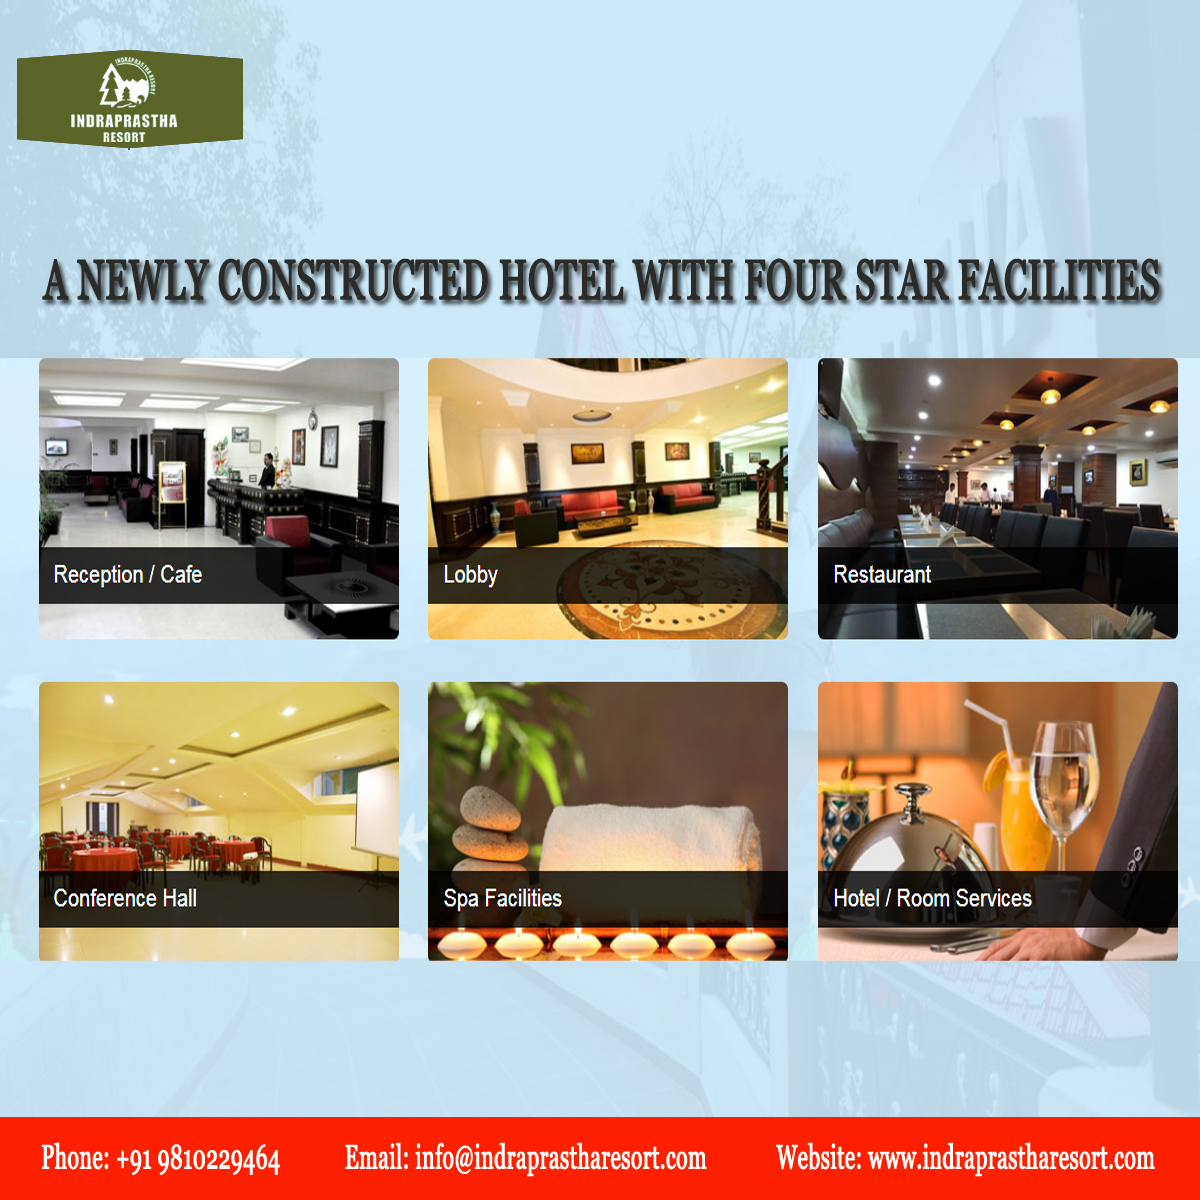 Contact the Best Hotel Booking Service Provider in Dalhousie